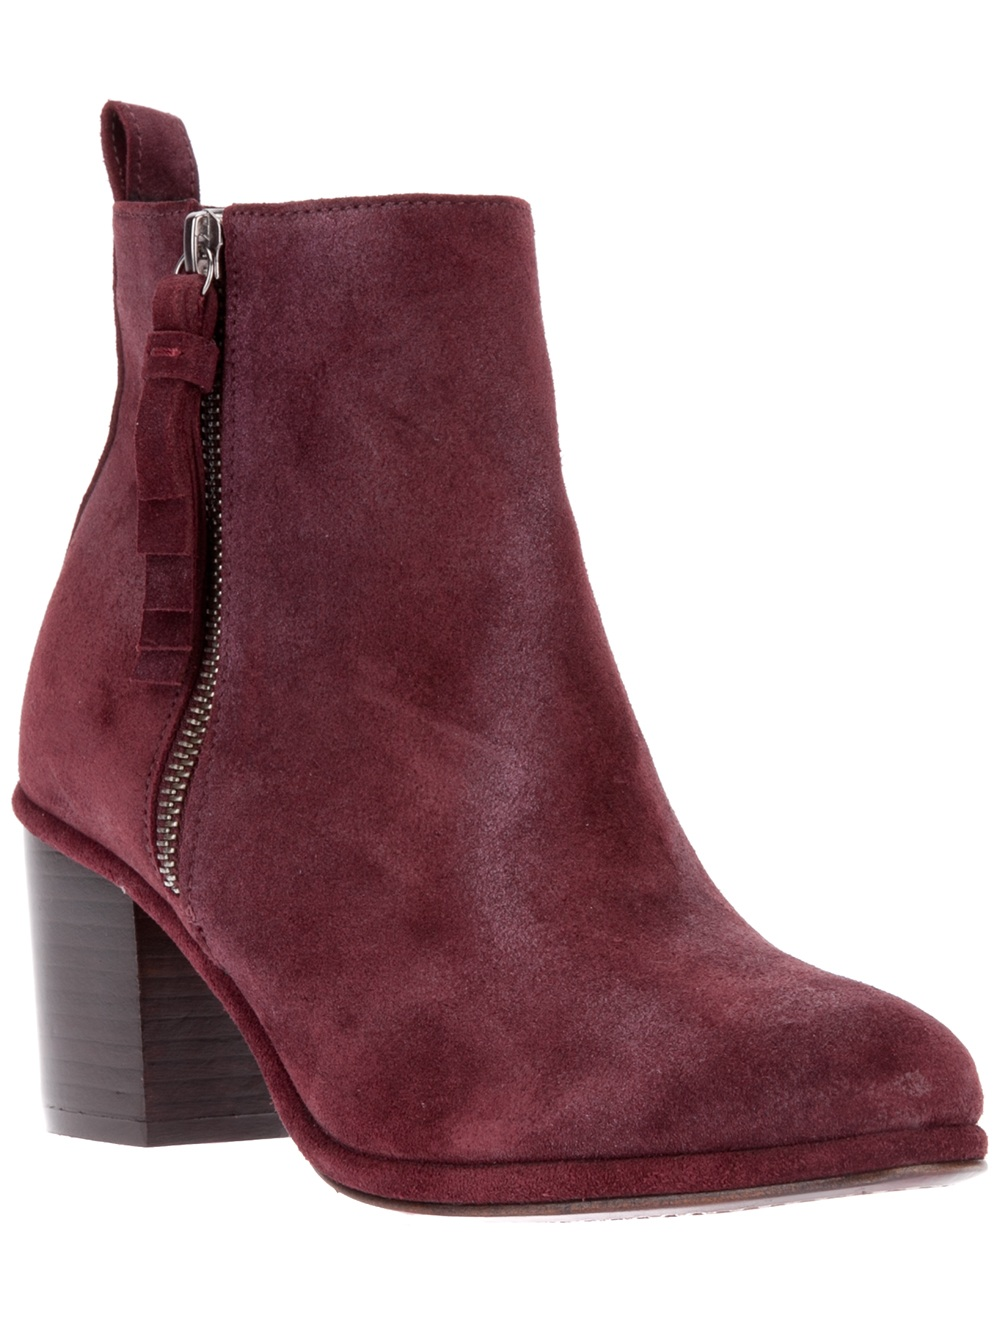 Opening ceremony Suede Chunky Heel Ankle Boot in Purple | Lyst